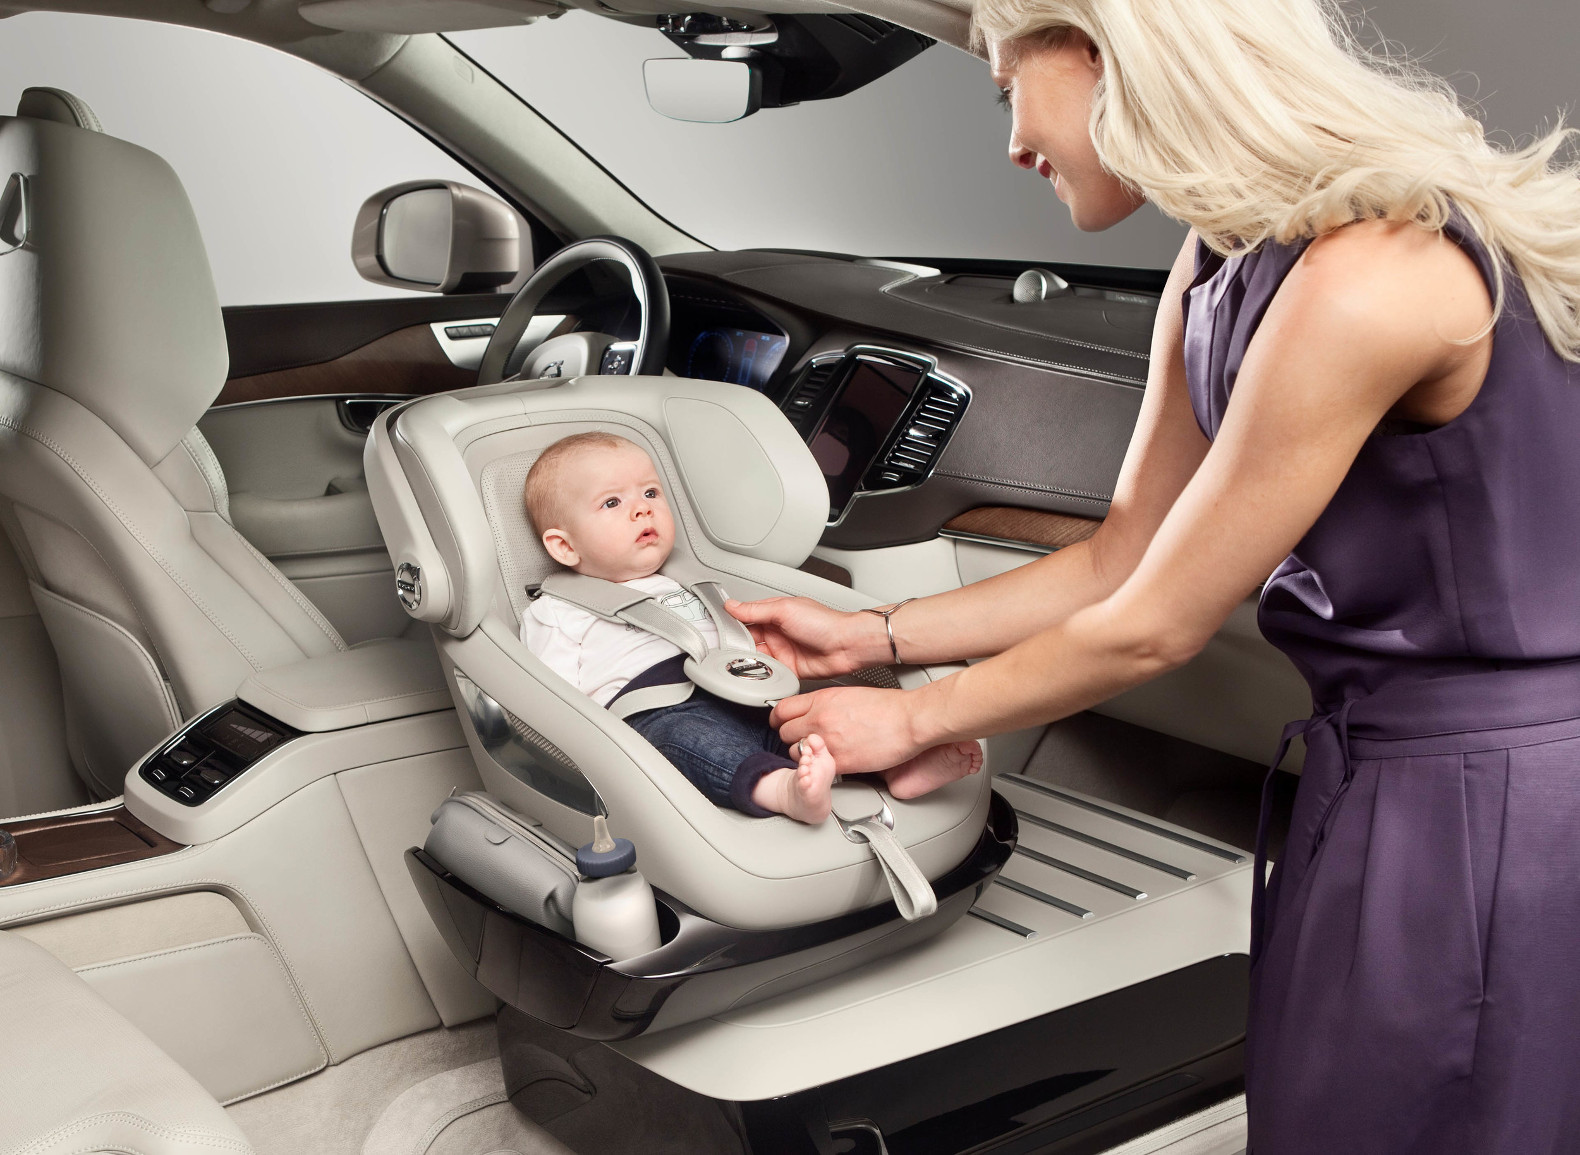 Volvo's front-row child seat concept puts a new spin on family road